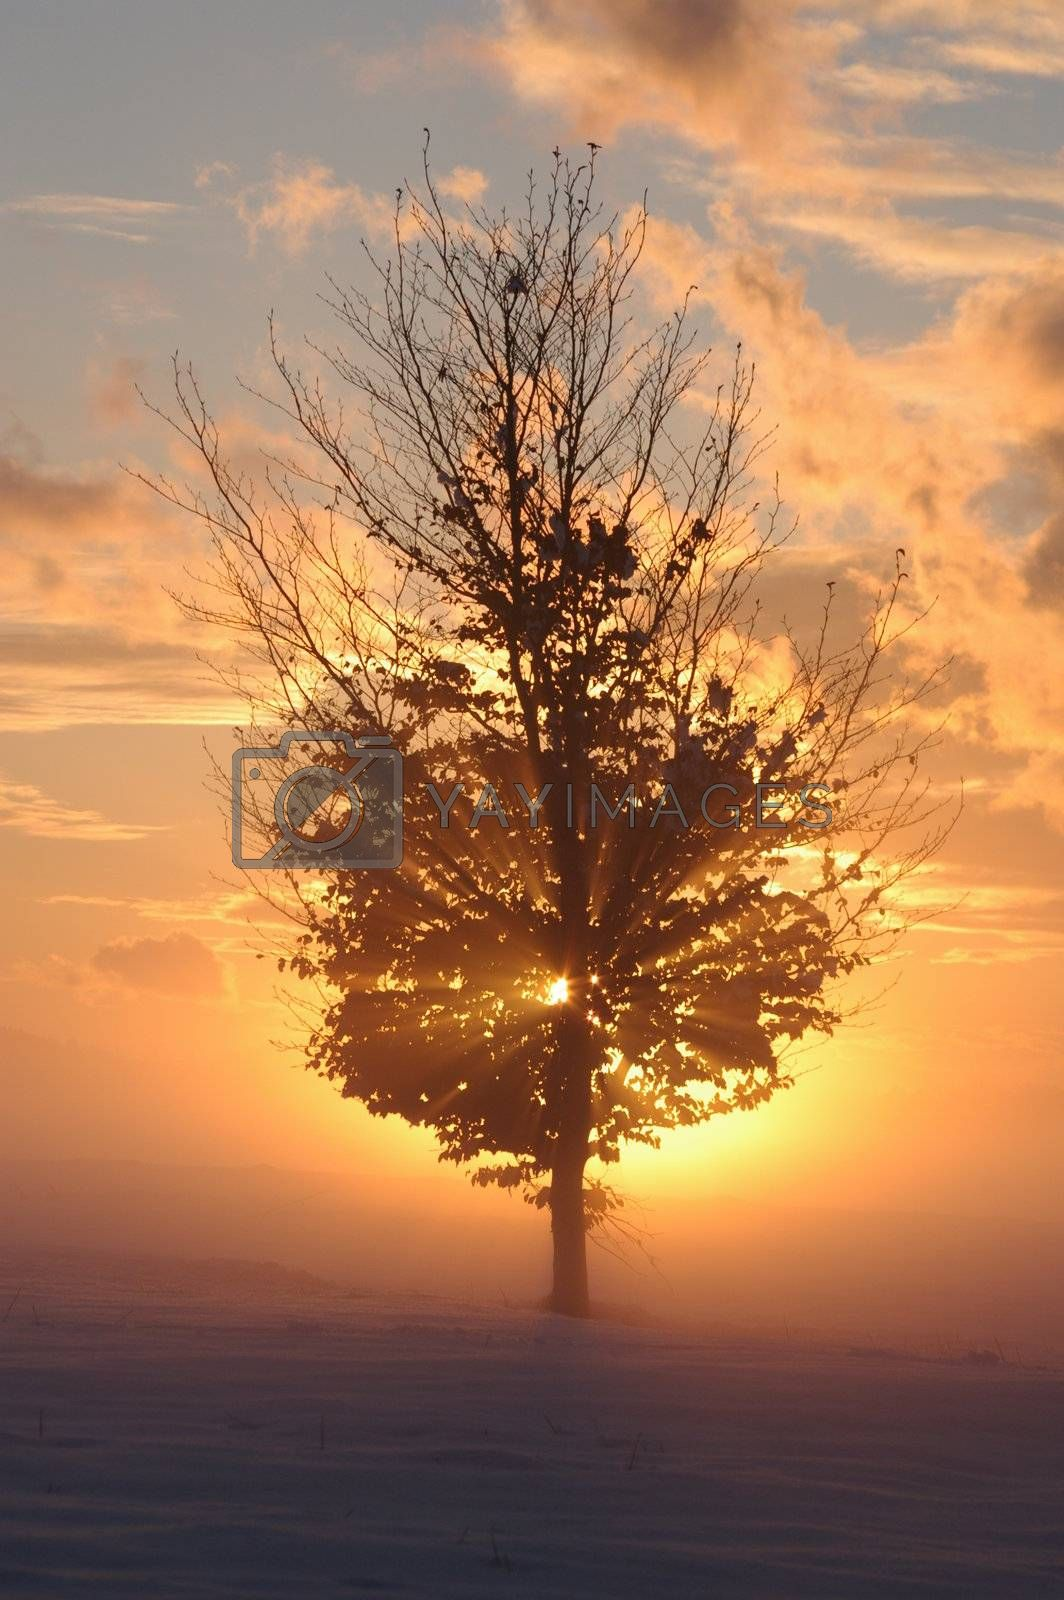 a romantic misty winter sunset with tree